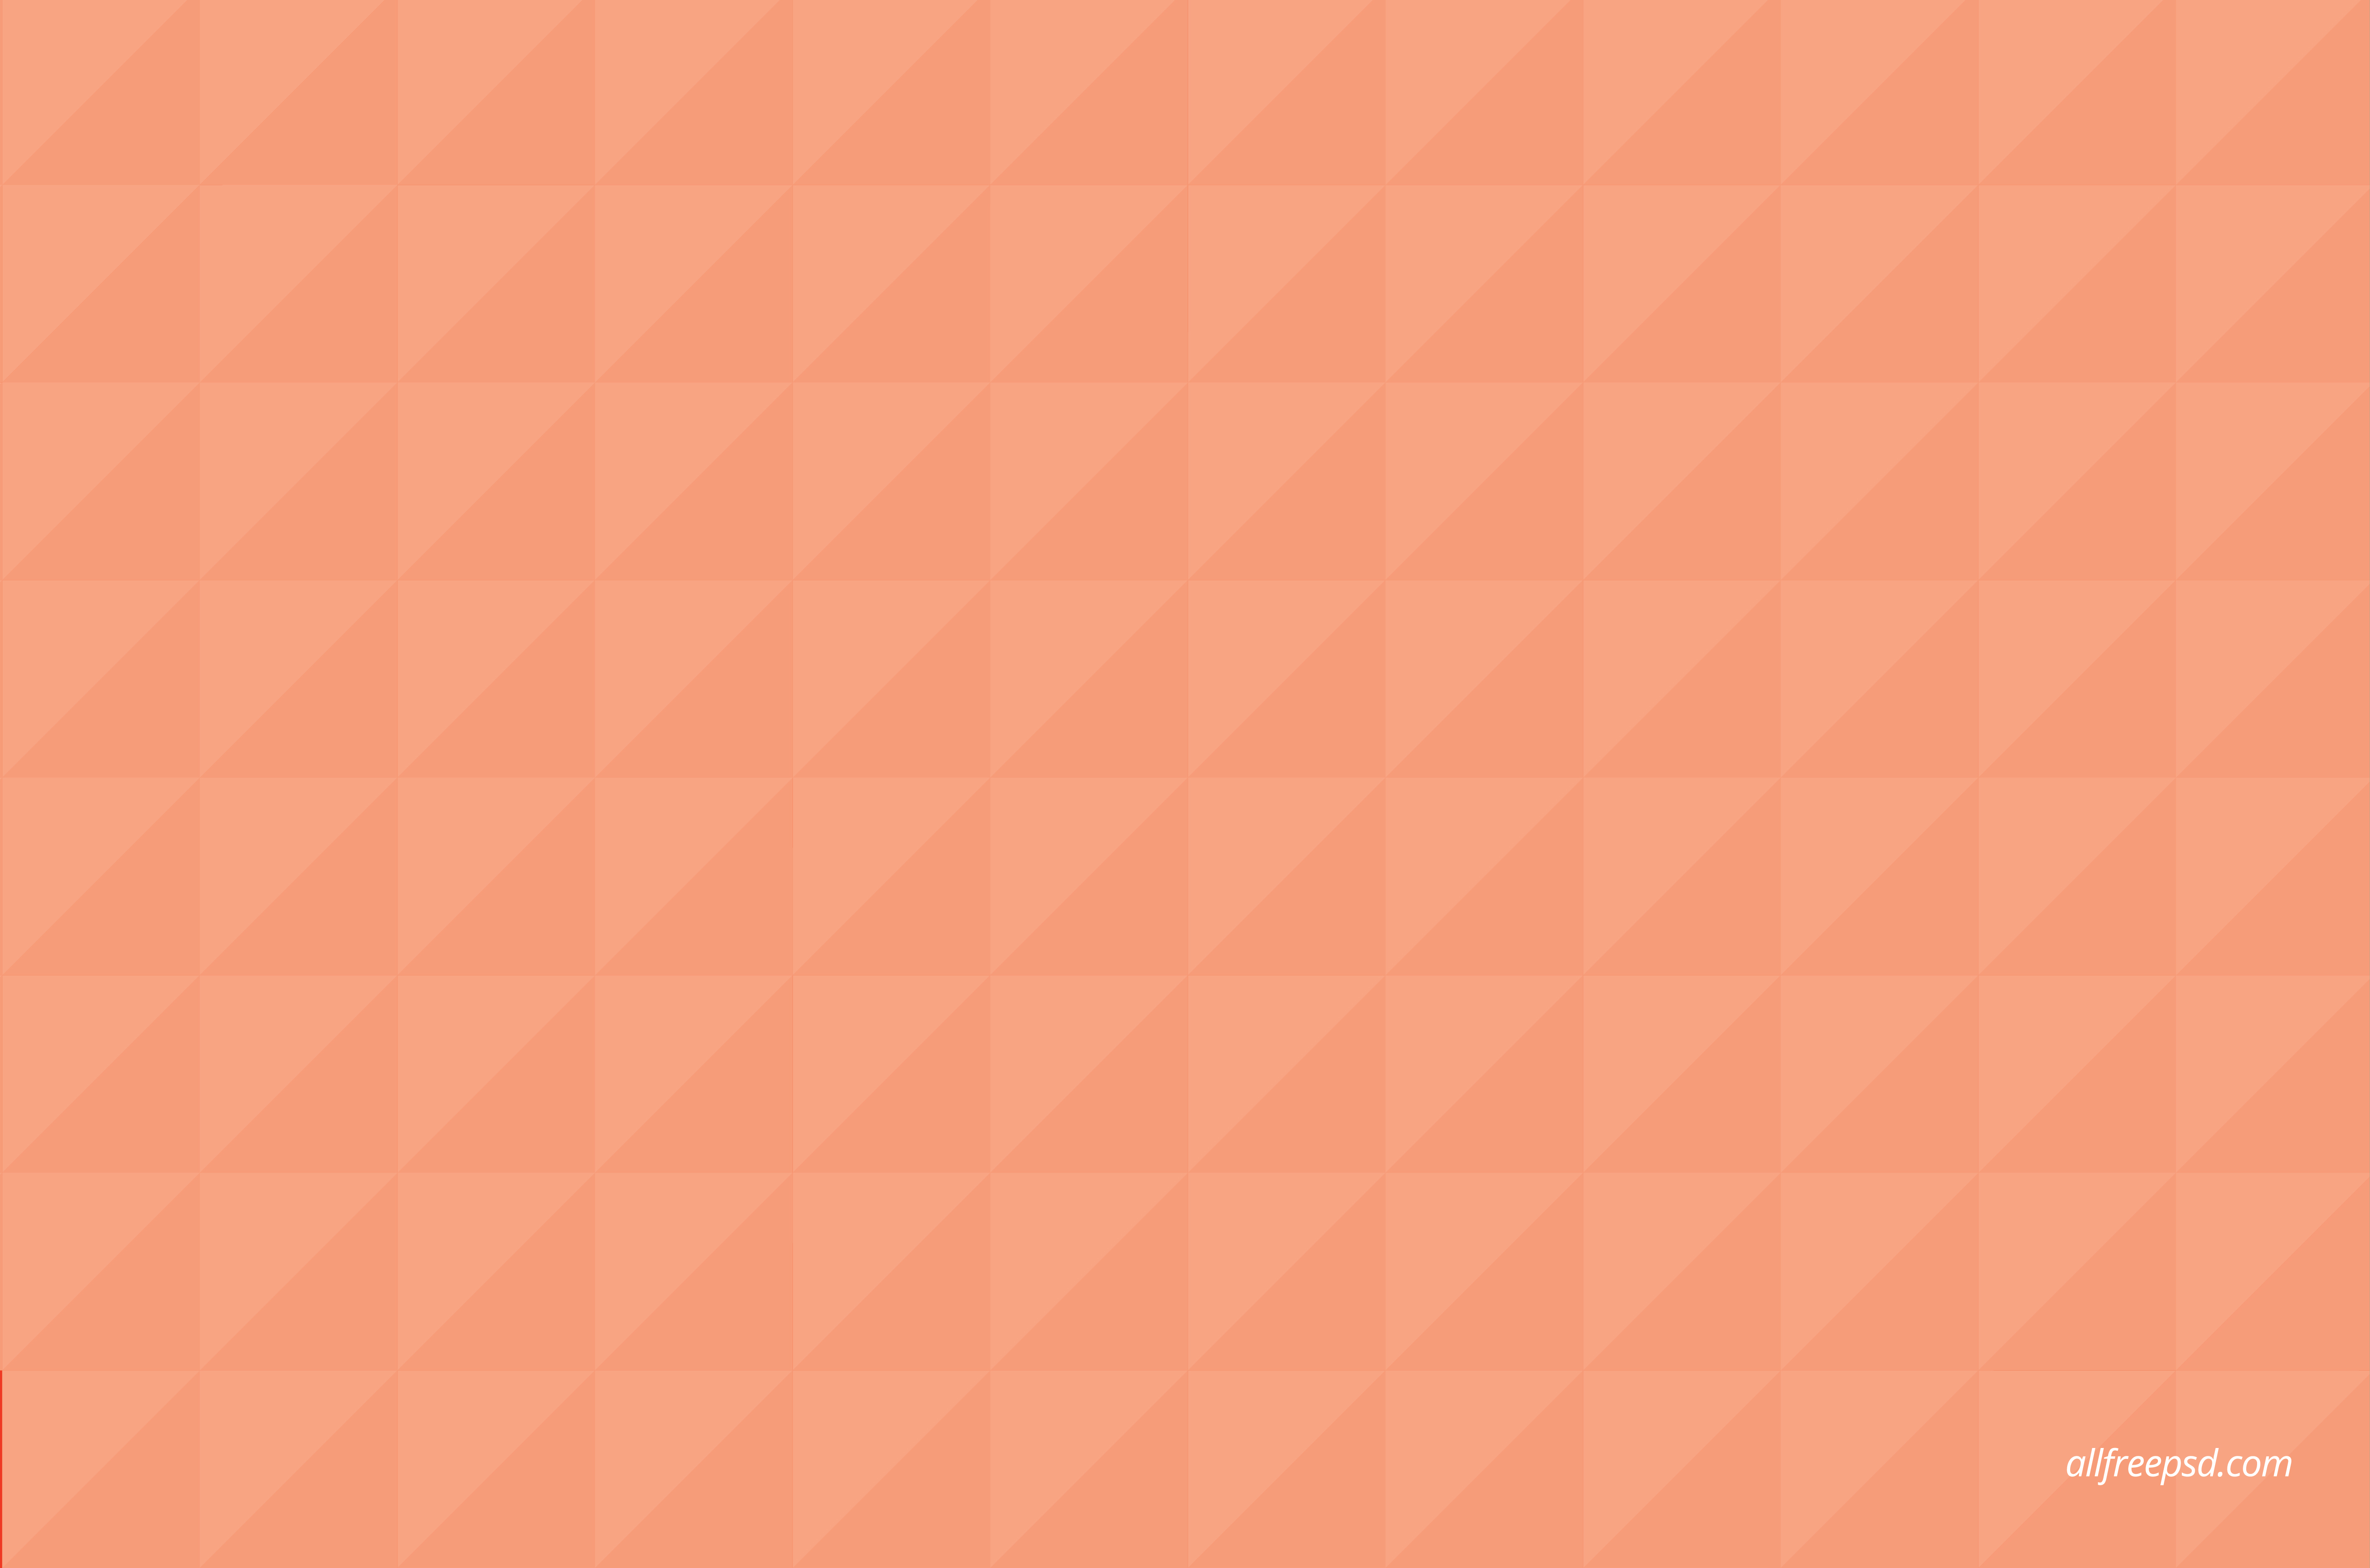 peach color checkered background free psd and graphic designs peach color checkered background free psd and graphic designs